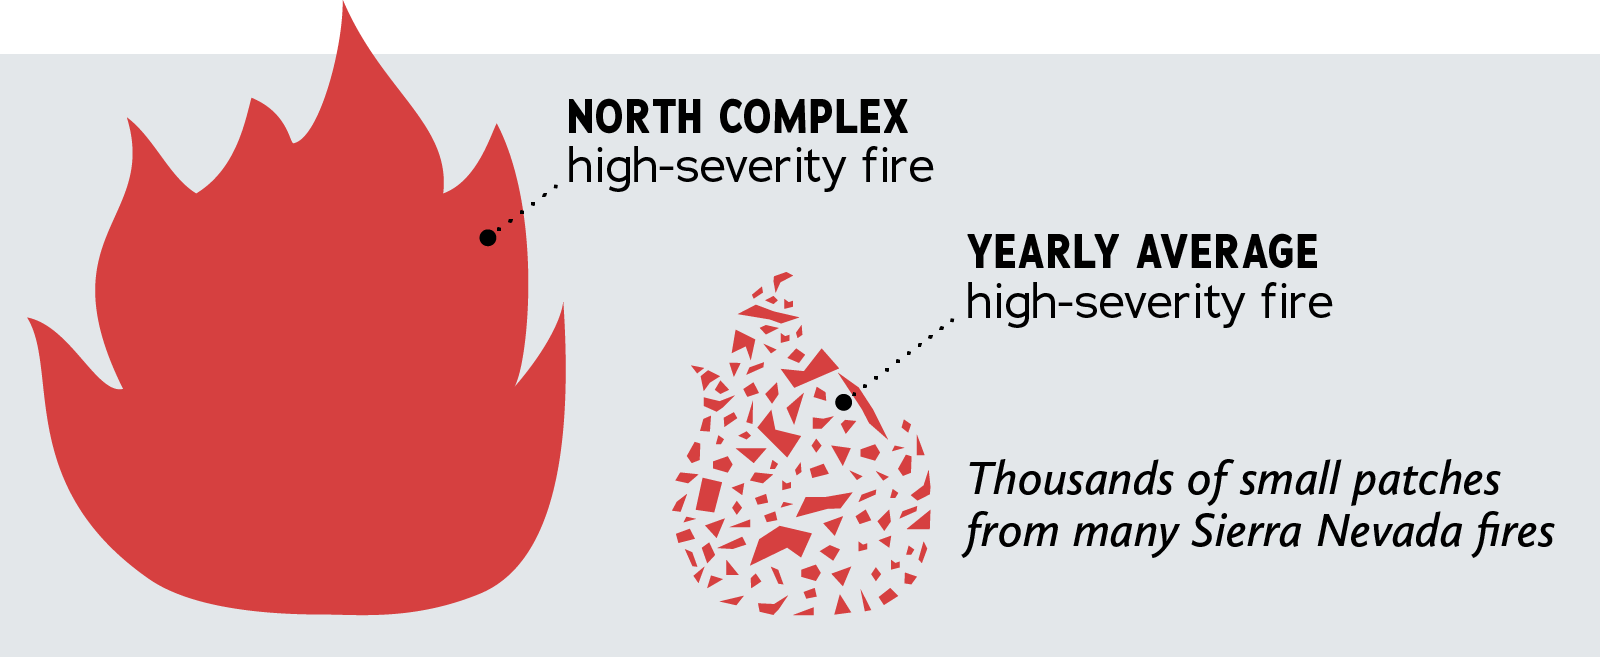 Large single flame representing the North Complex fire's high severity area. This is compared to a smaller grouping of small patches that represent the yearly average of high severity fire. This is thousands of small patches from many Sierra fires.